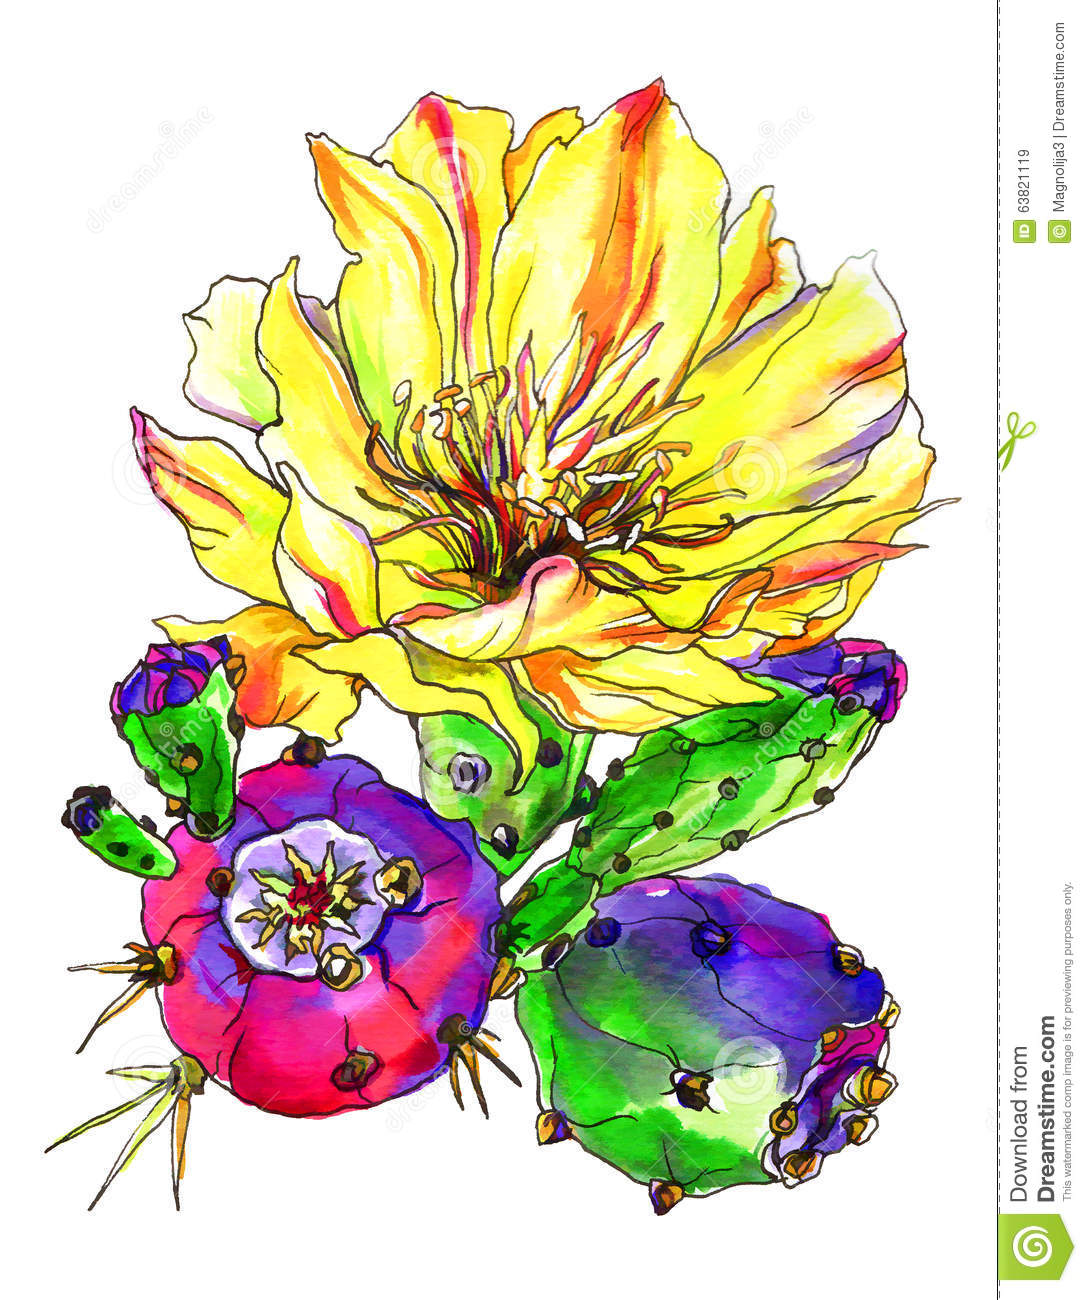 Cactus Blossom clipart #11, Download drawings